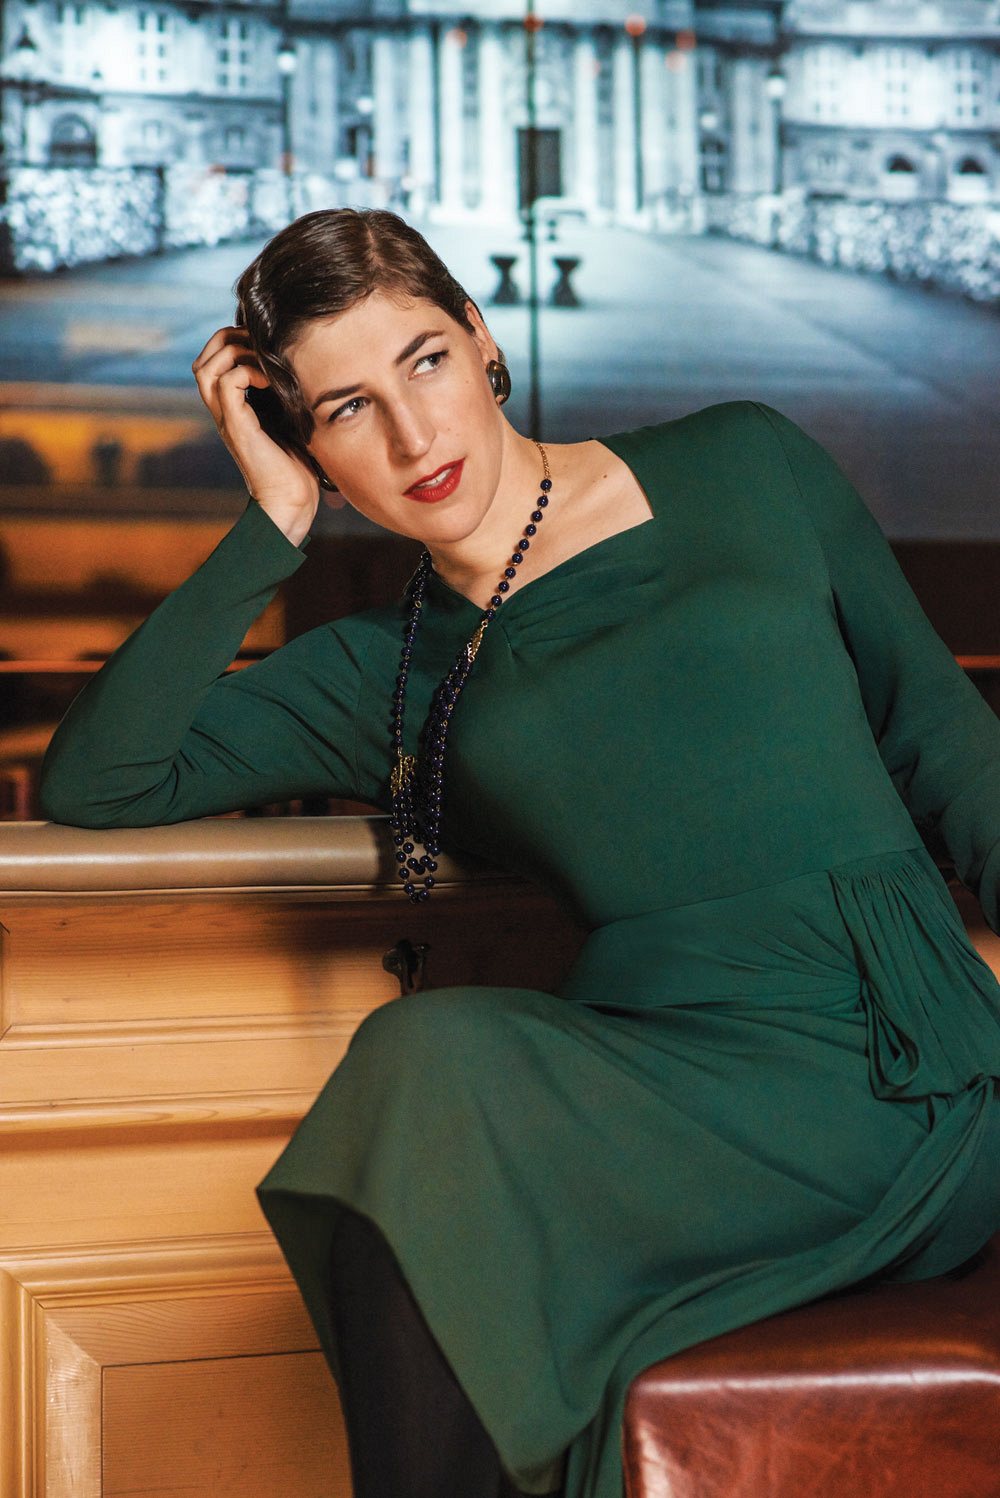 Mayim Bialik of The Big Bang Theory  - Feb 2014 - Watch! Magazine